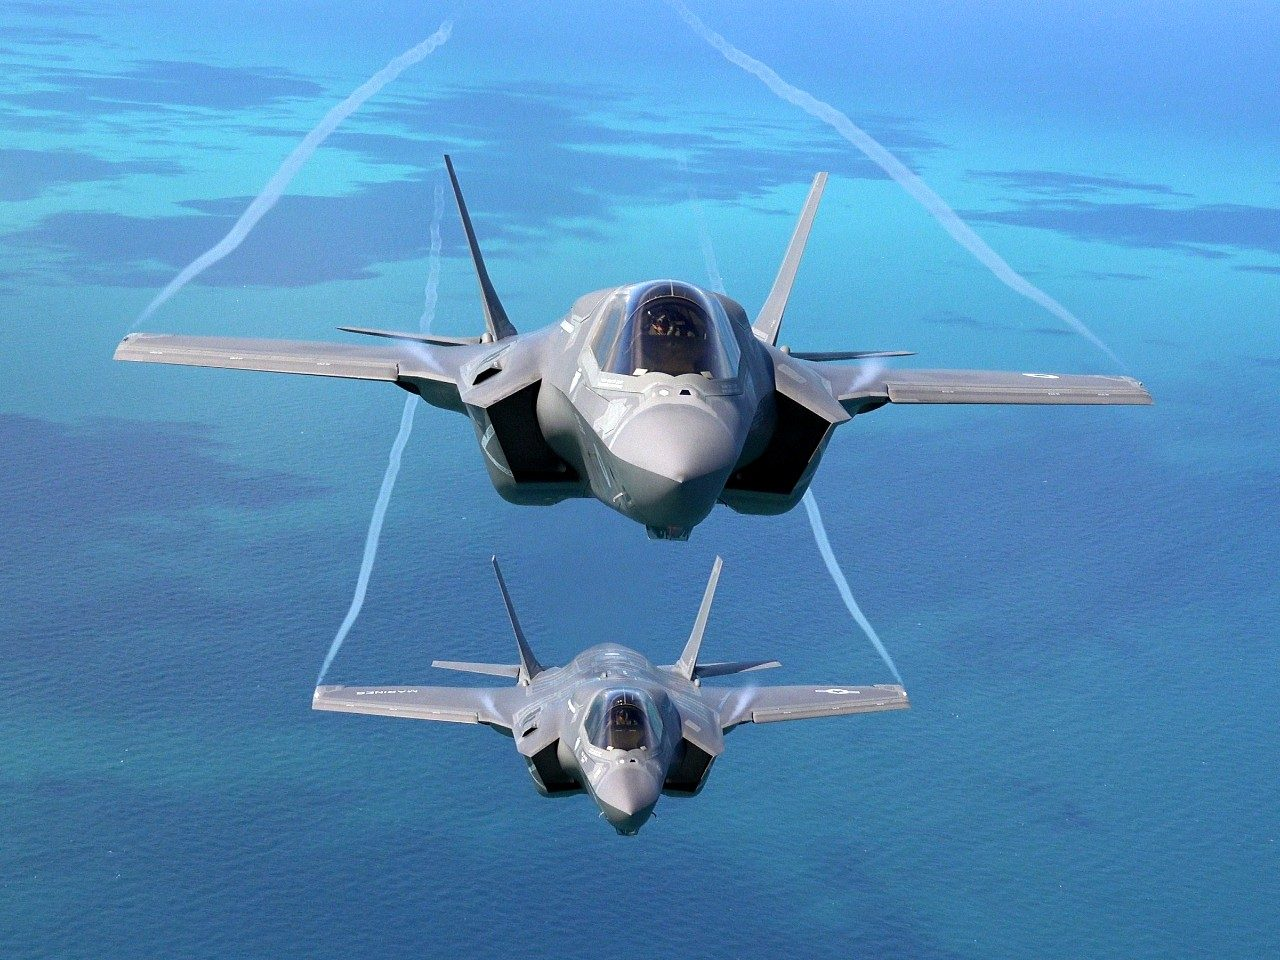 A UK F-35 flies above a USMC F-35 over the UK in 2016